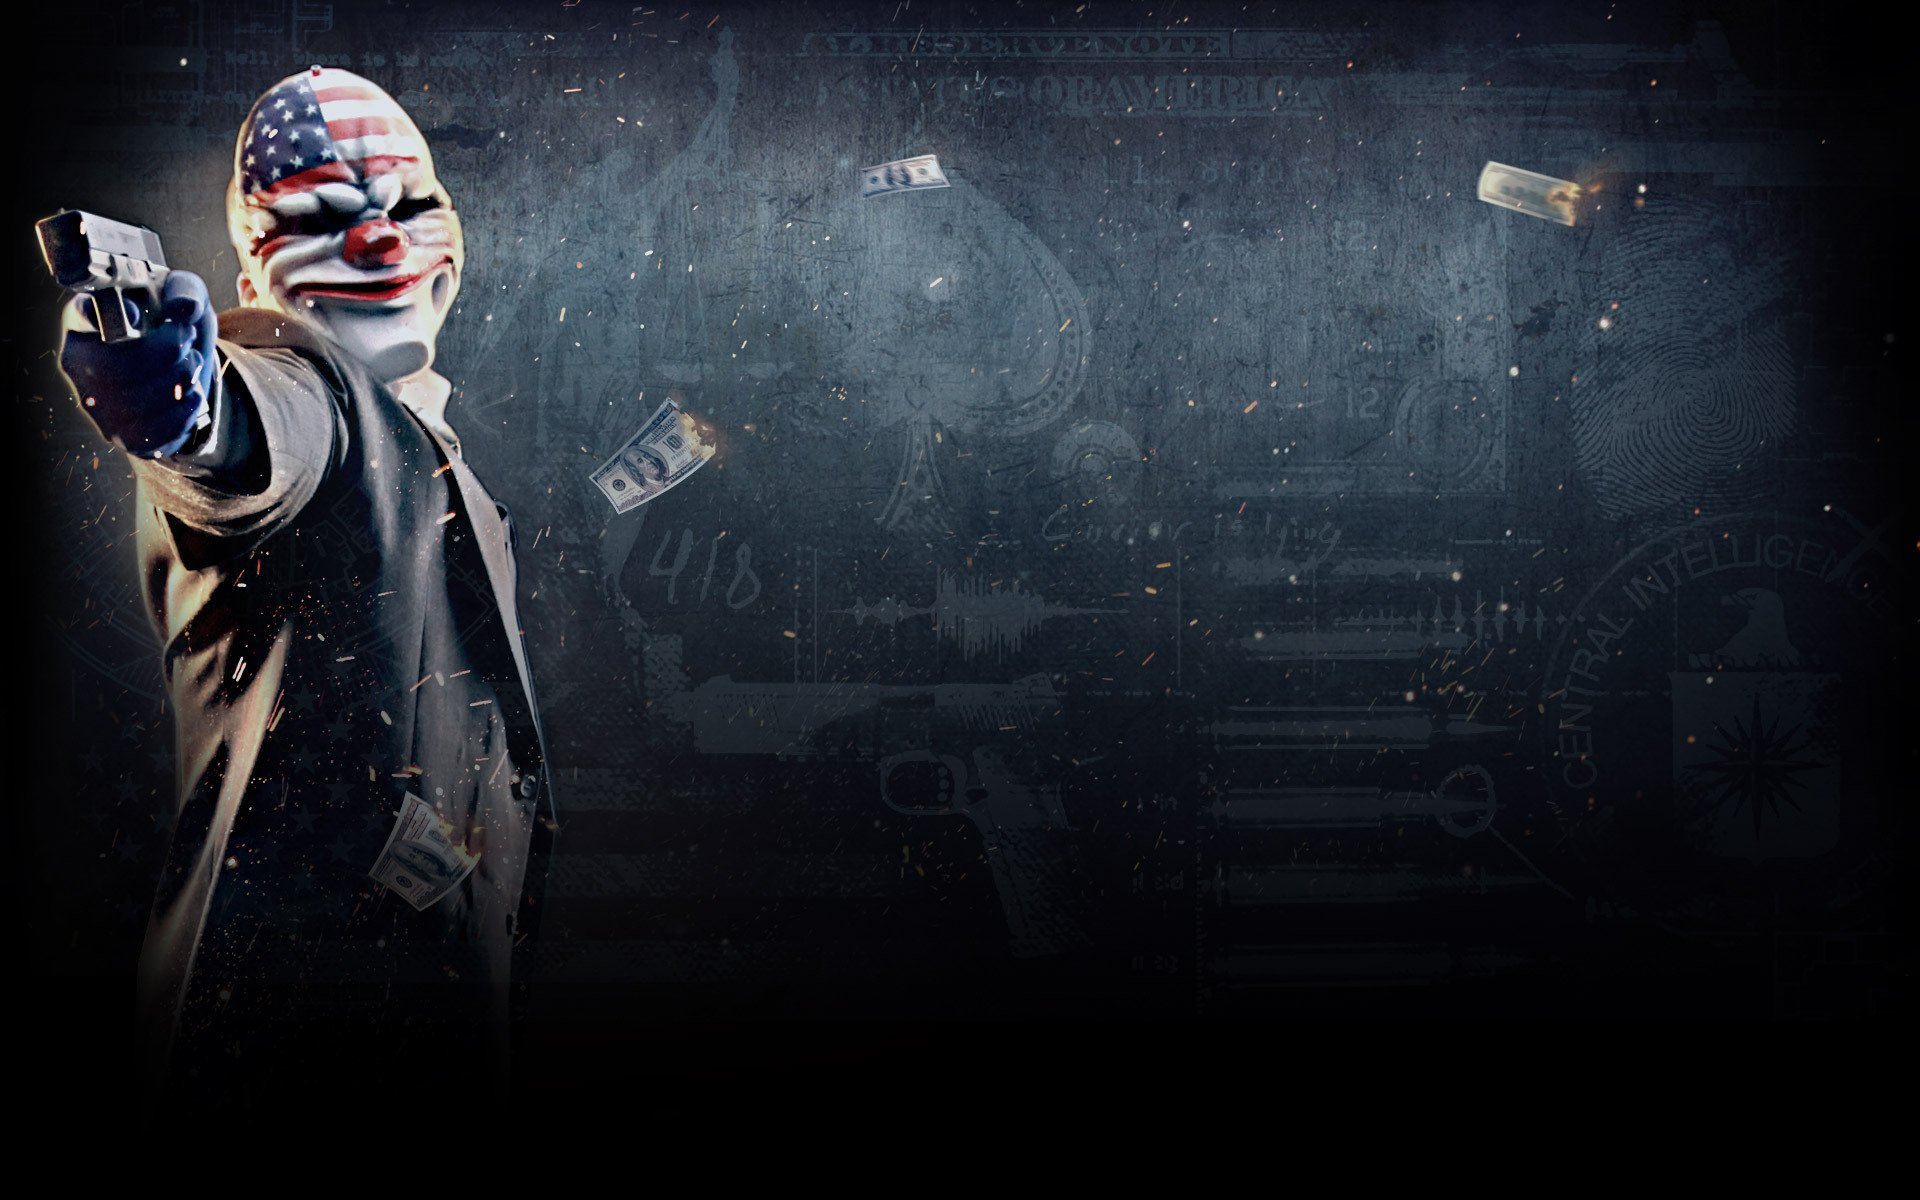 110 Payday Hd Wallpapers Background Images Wallpaper Abyss